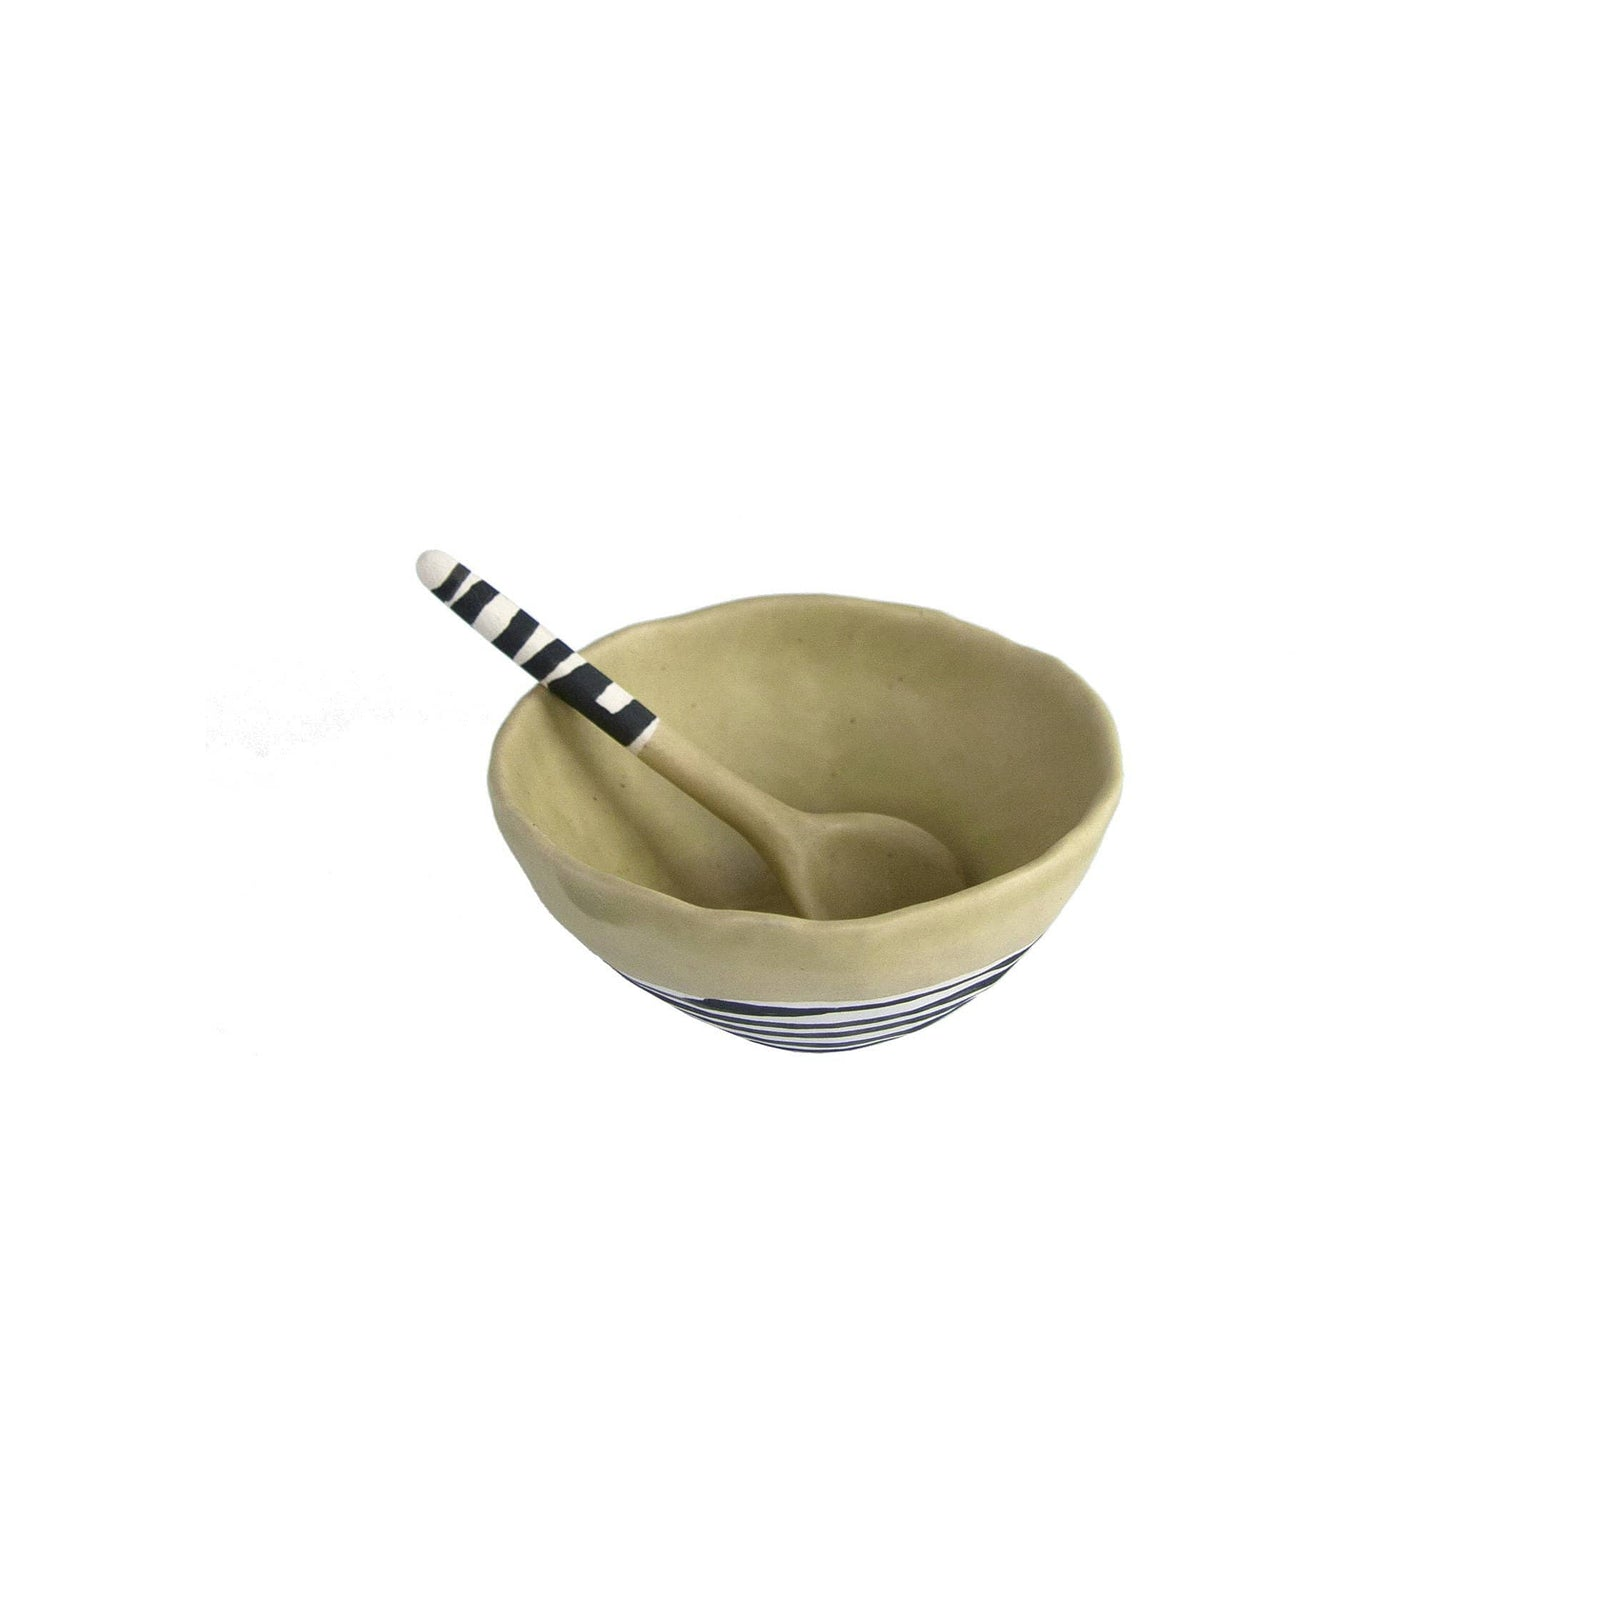 Elizabeth Benotti Handmade Ceramics Pottery Olive Pinched Striped Bowl w/ Spoon, Small